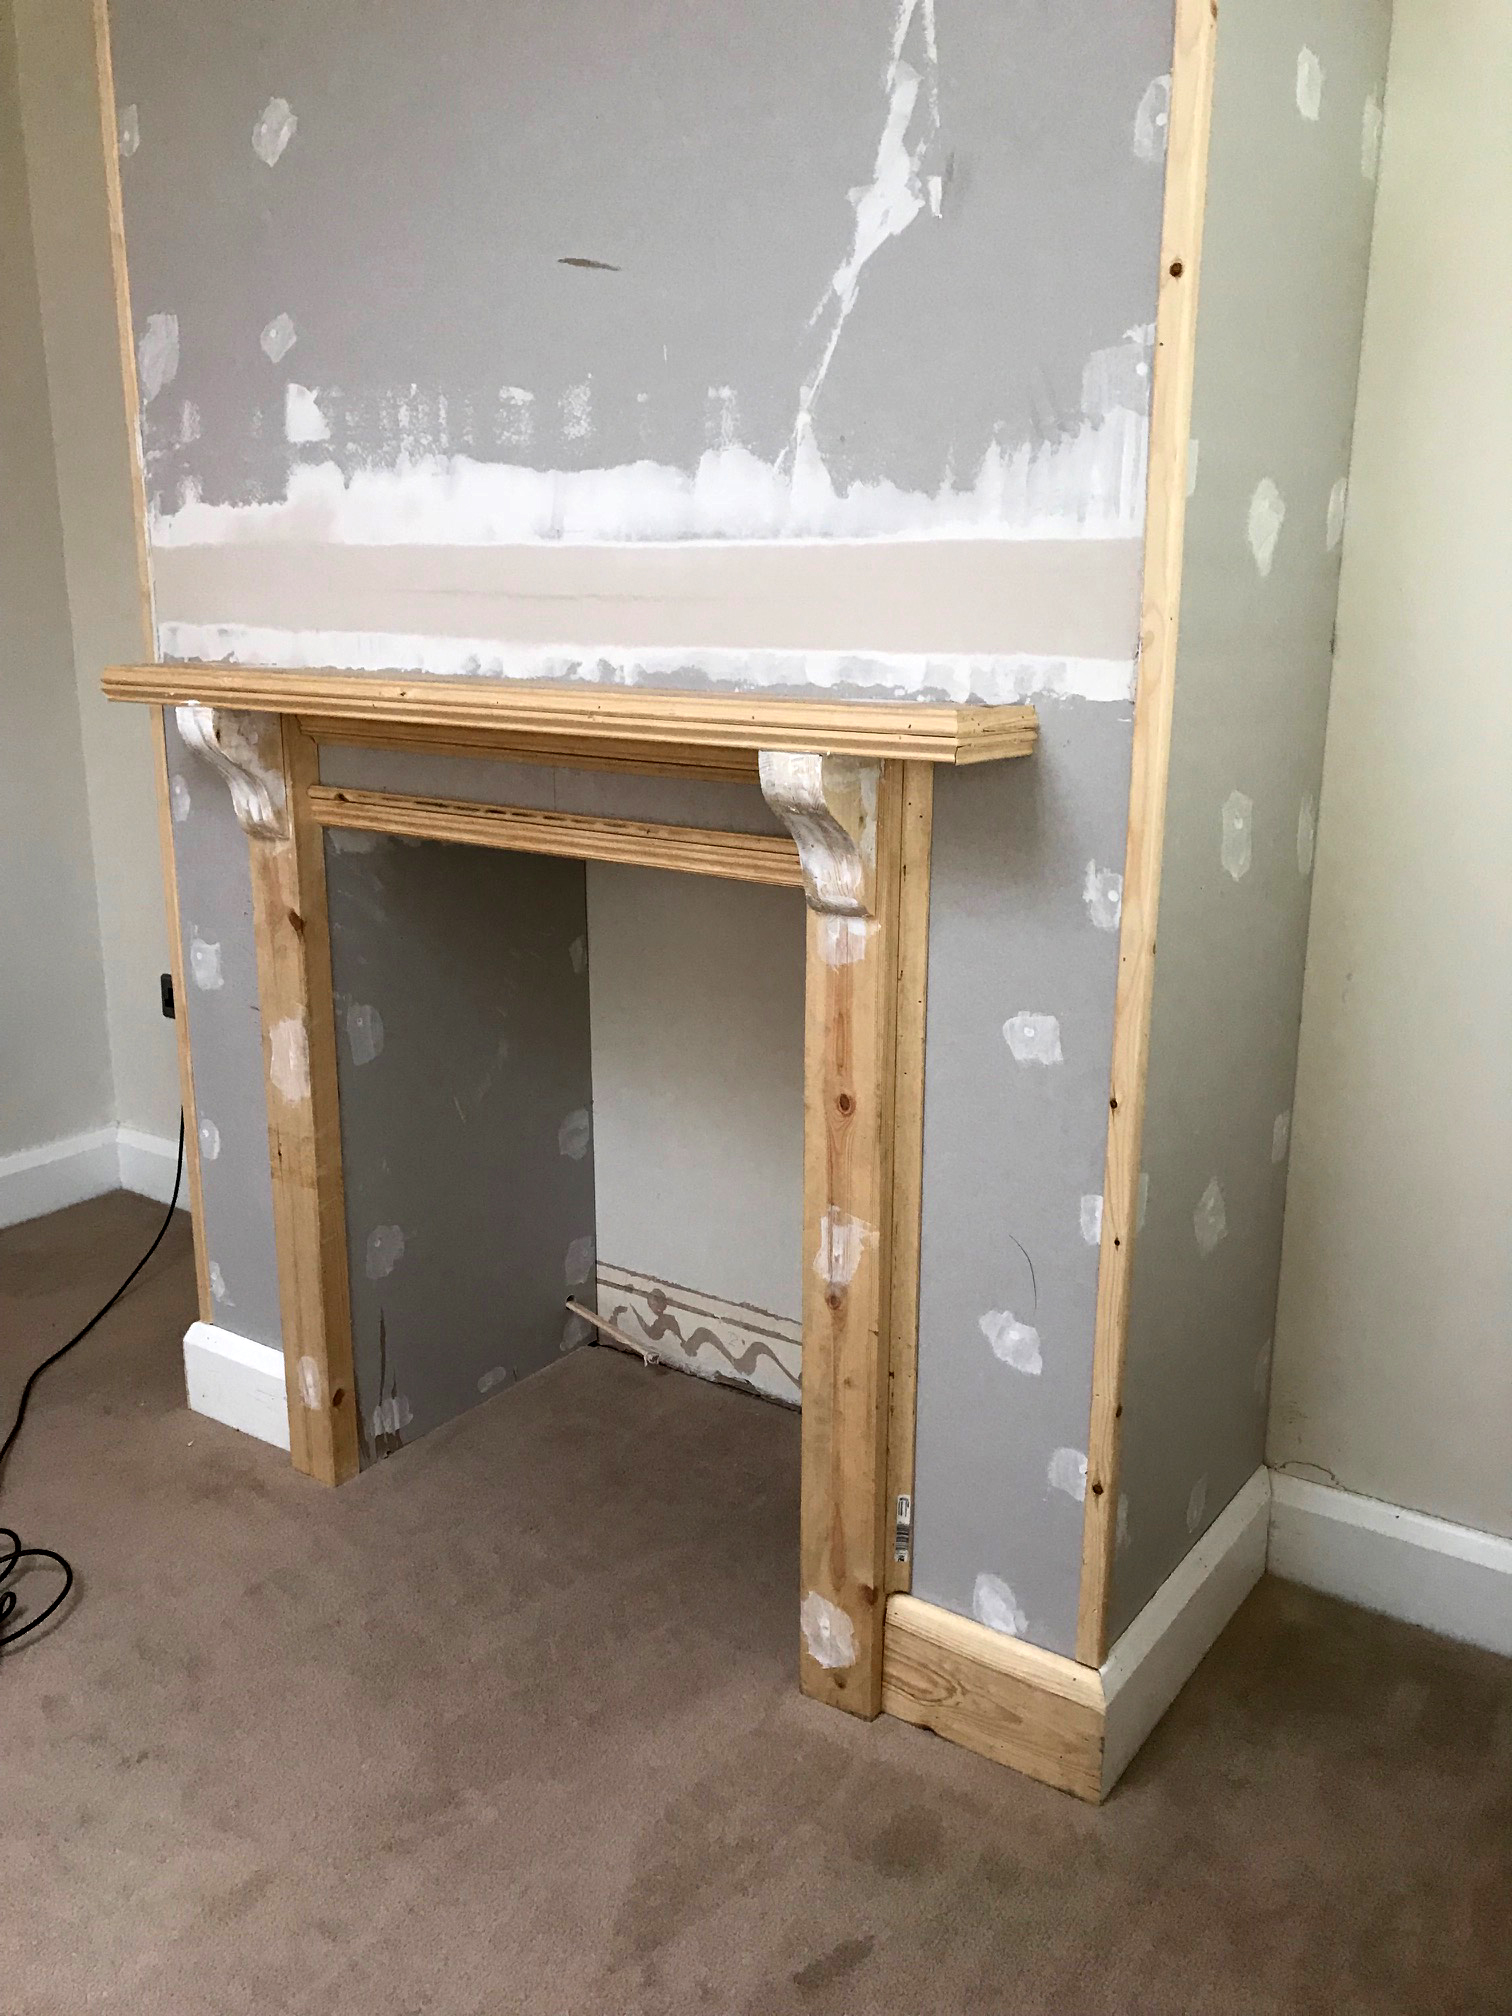 THTMM Fireplace build in progress